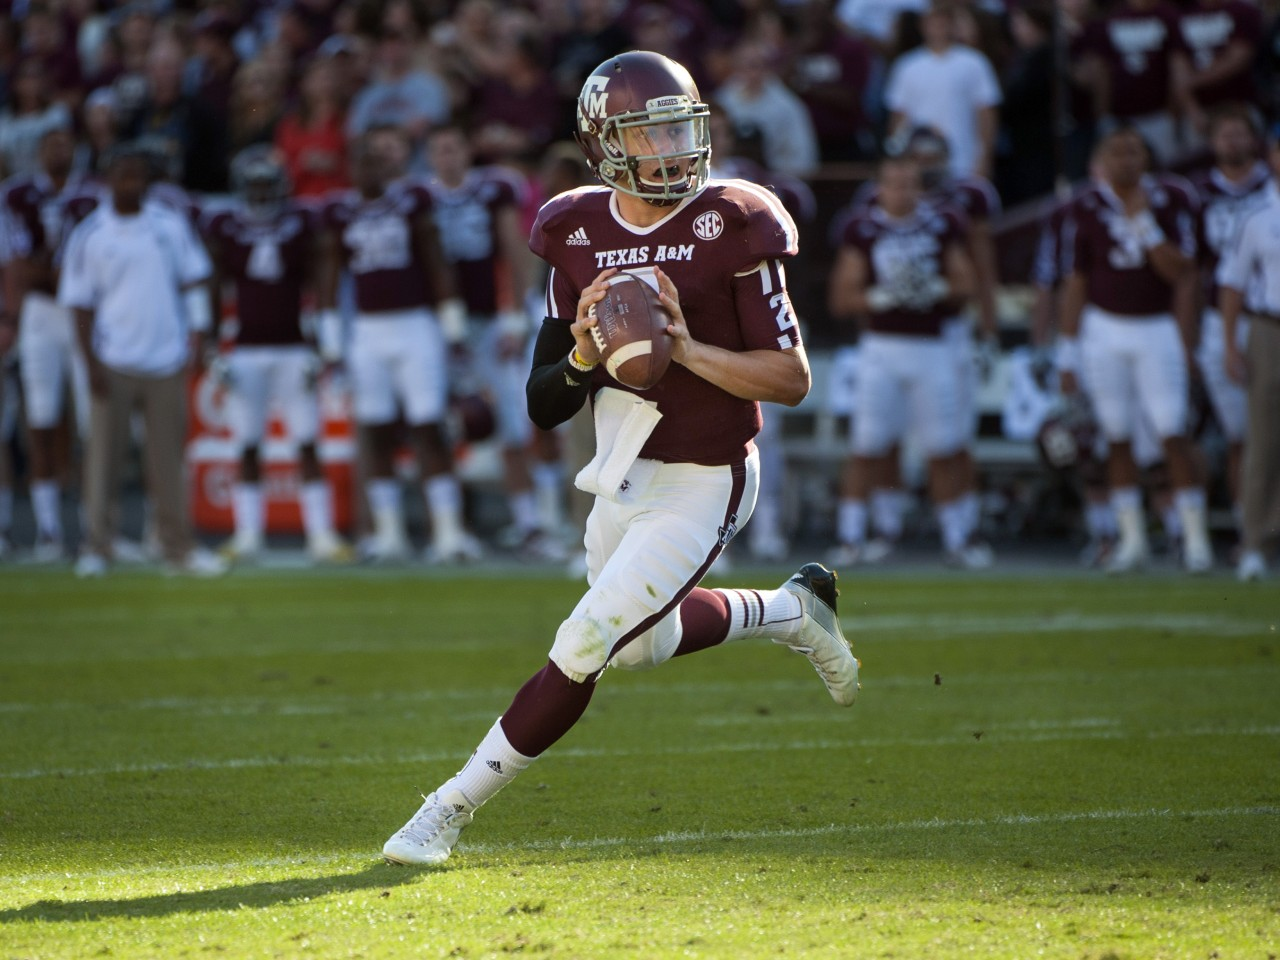 http://media.salon.com/2012/12/heisman-johnny-manziel-football.jpeg8-1280x960.jpg